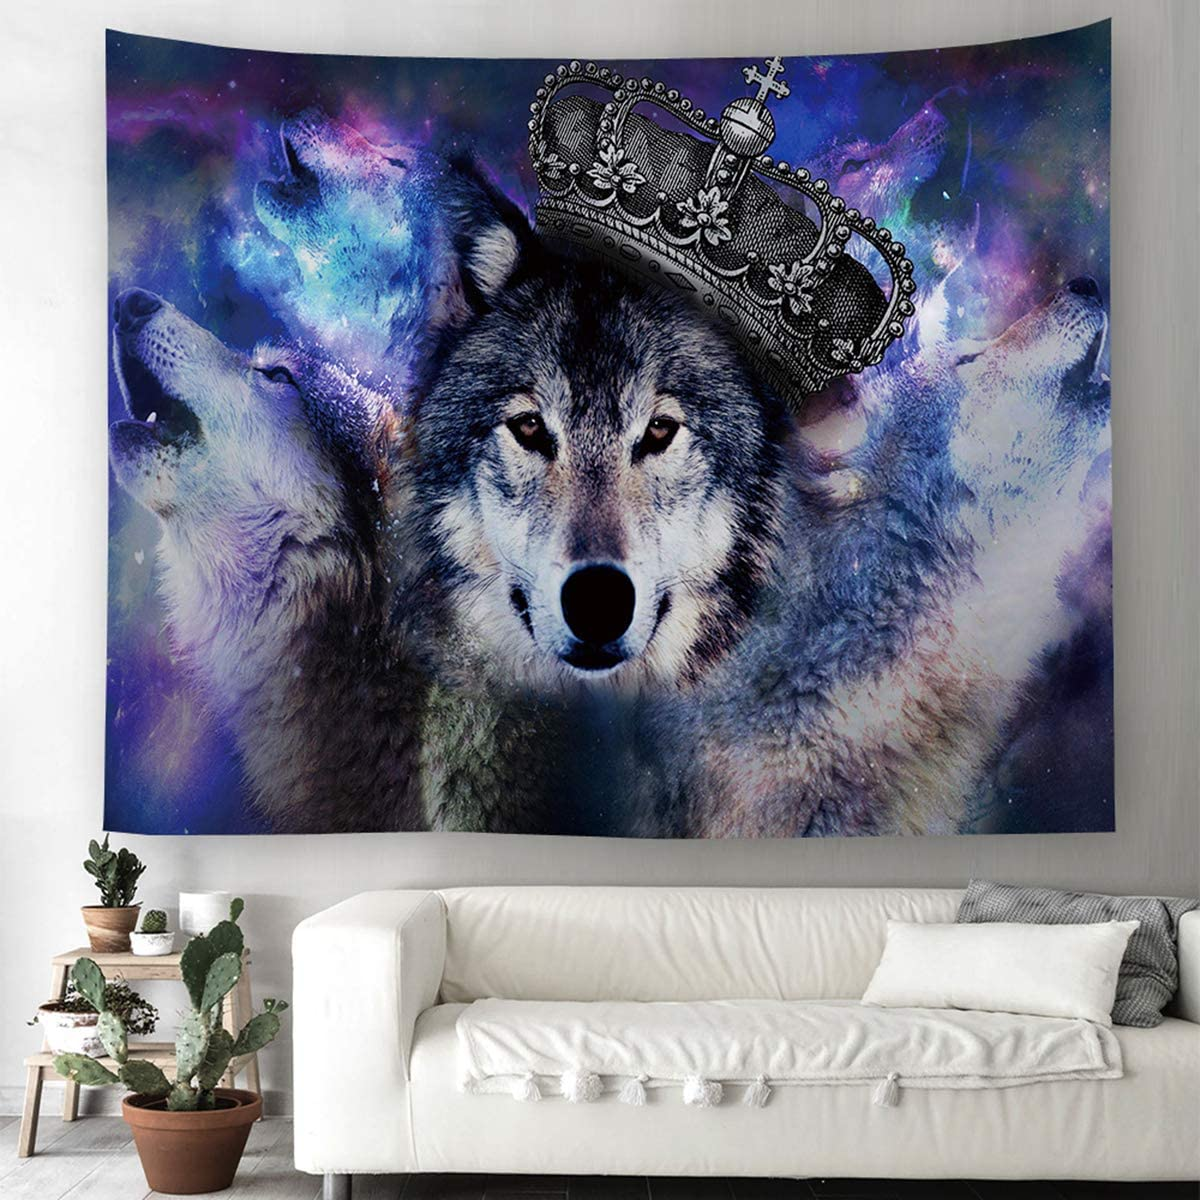 "Shukqueen Wolf King Painting Wall Hanging Tapestry with Romantic Pictures Art Nature Home Decorations for Living Room Bedroom Dorm Decor (60"" H x 80"" W)"